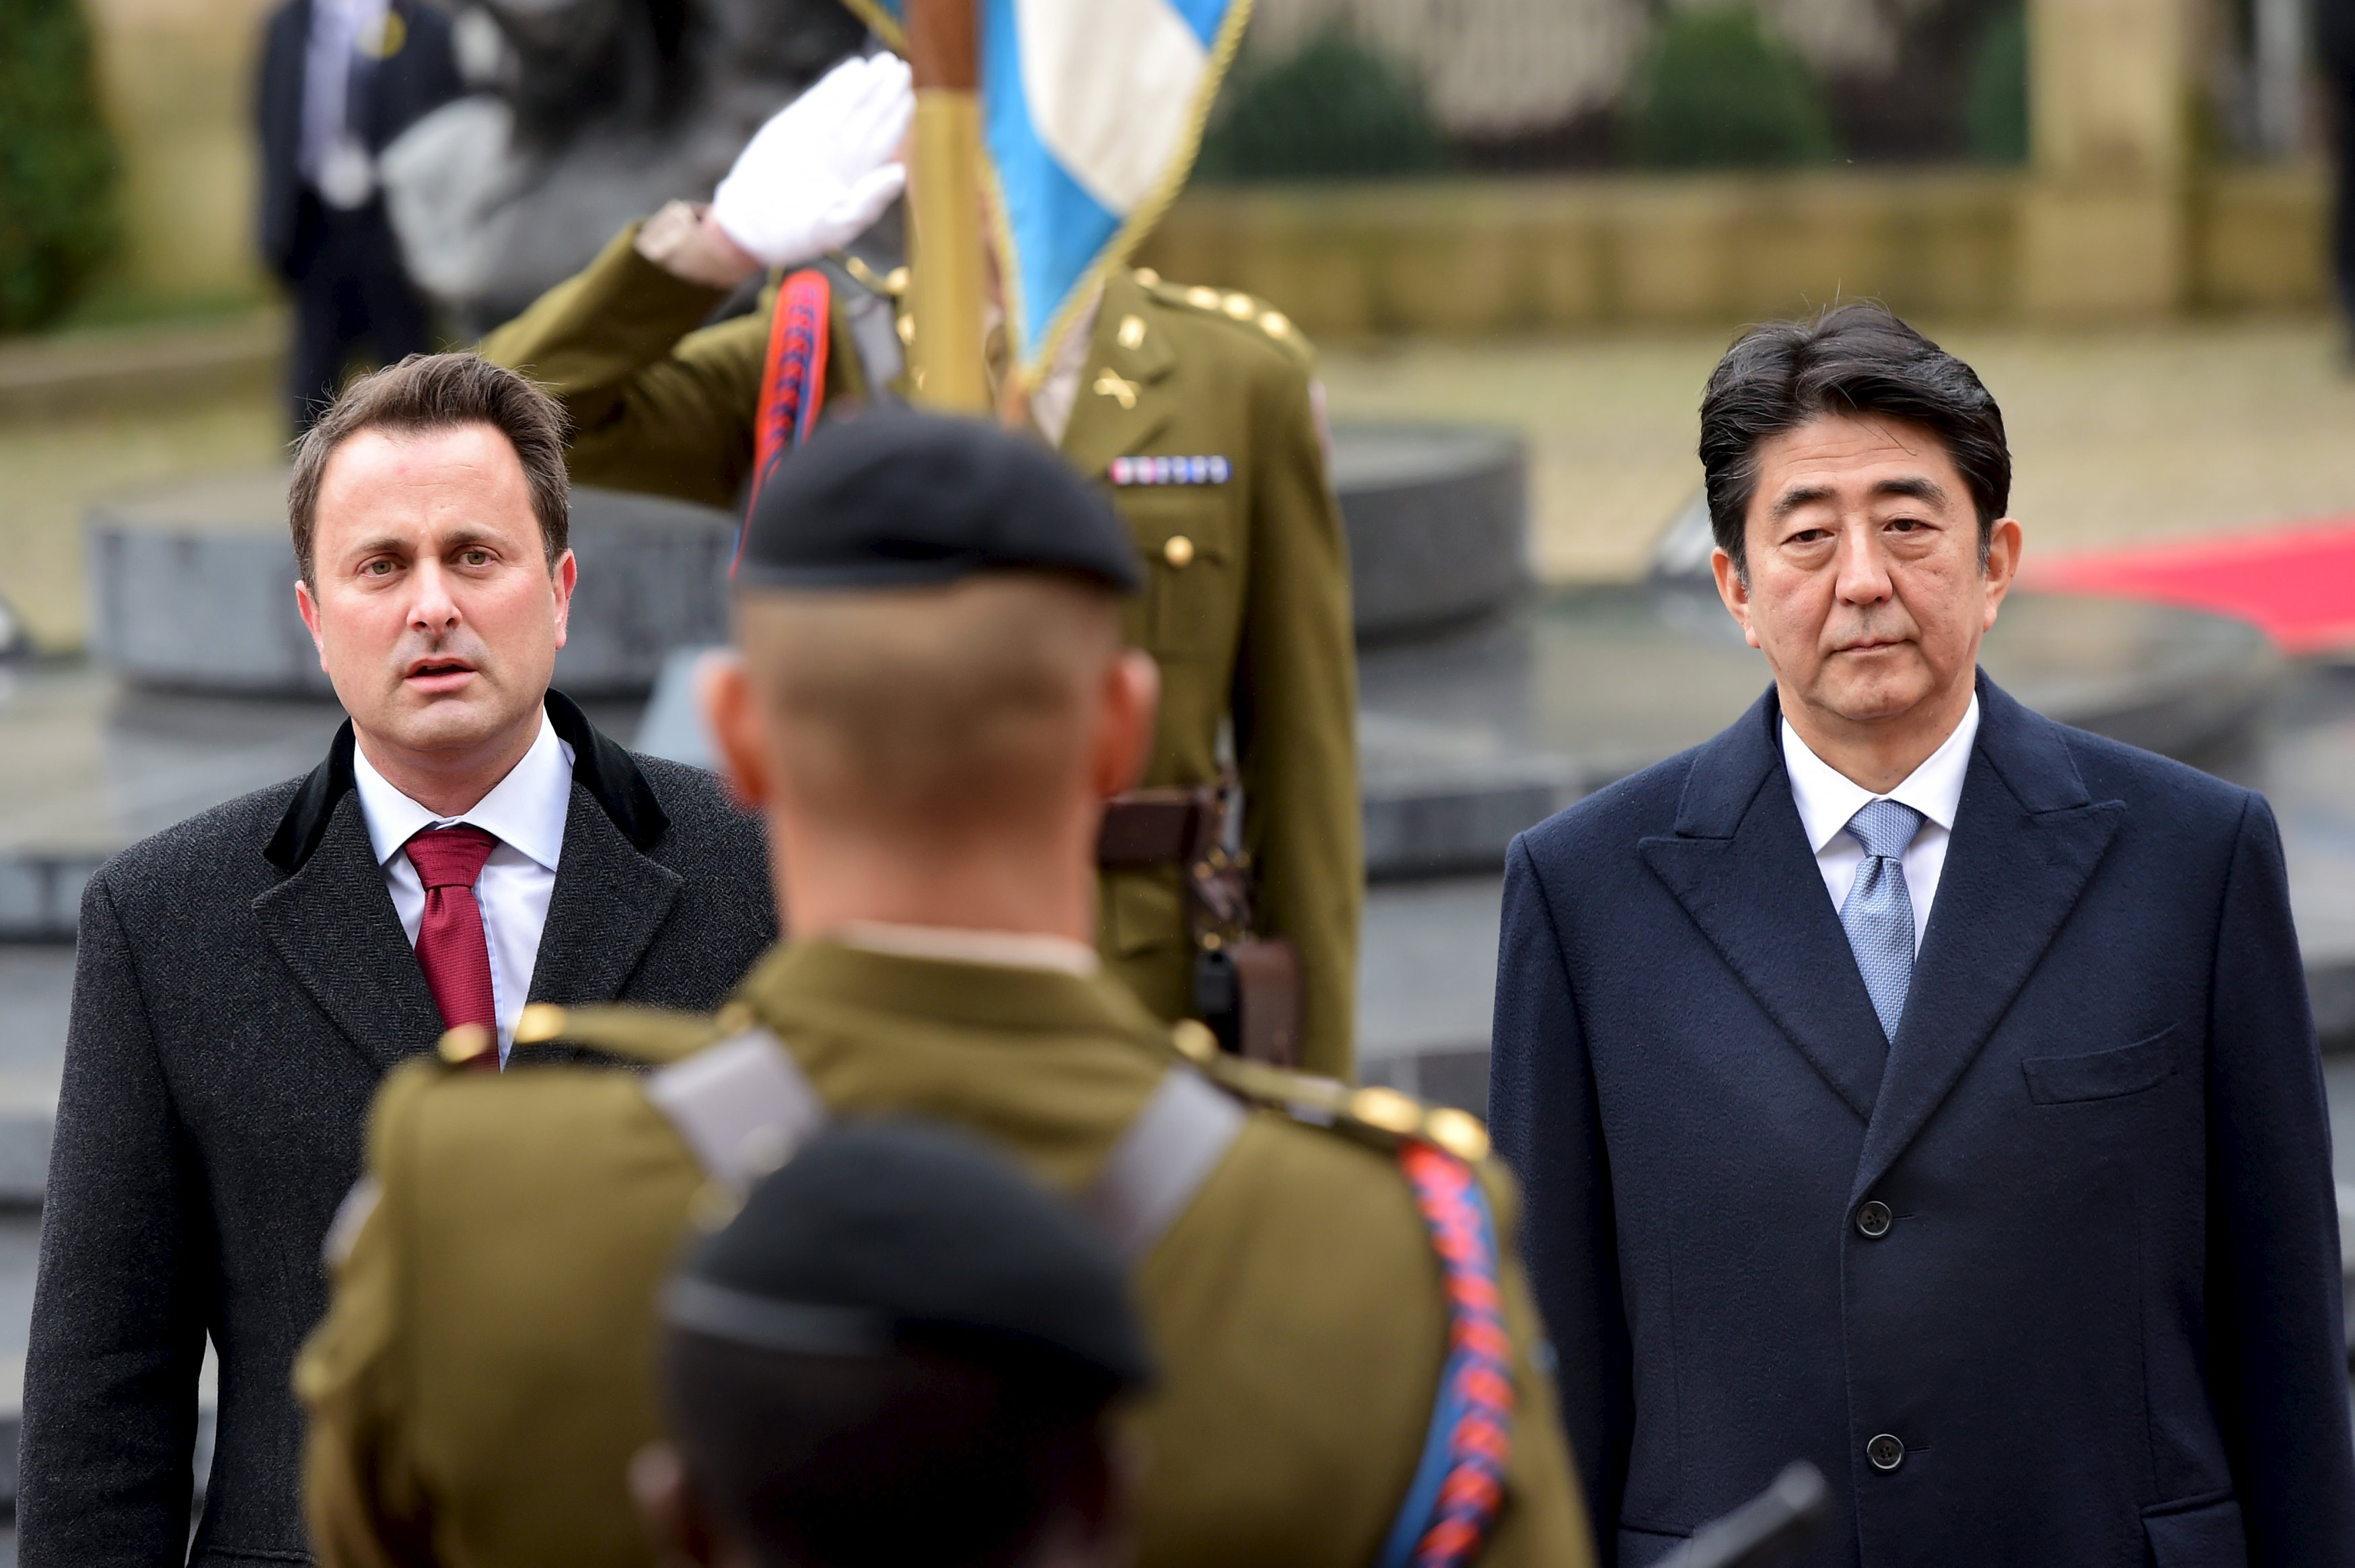 Japanese Prime Minister Shinzo Abe reviews the troops with Luxembourg's Prime Minister Xavier Bettel (not seen) at the start of his official visit in Luxembourg city, Luxembourg December 1, 2015. Photo: Reuters